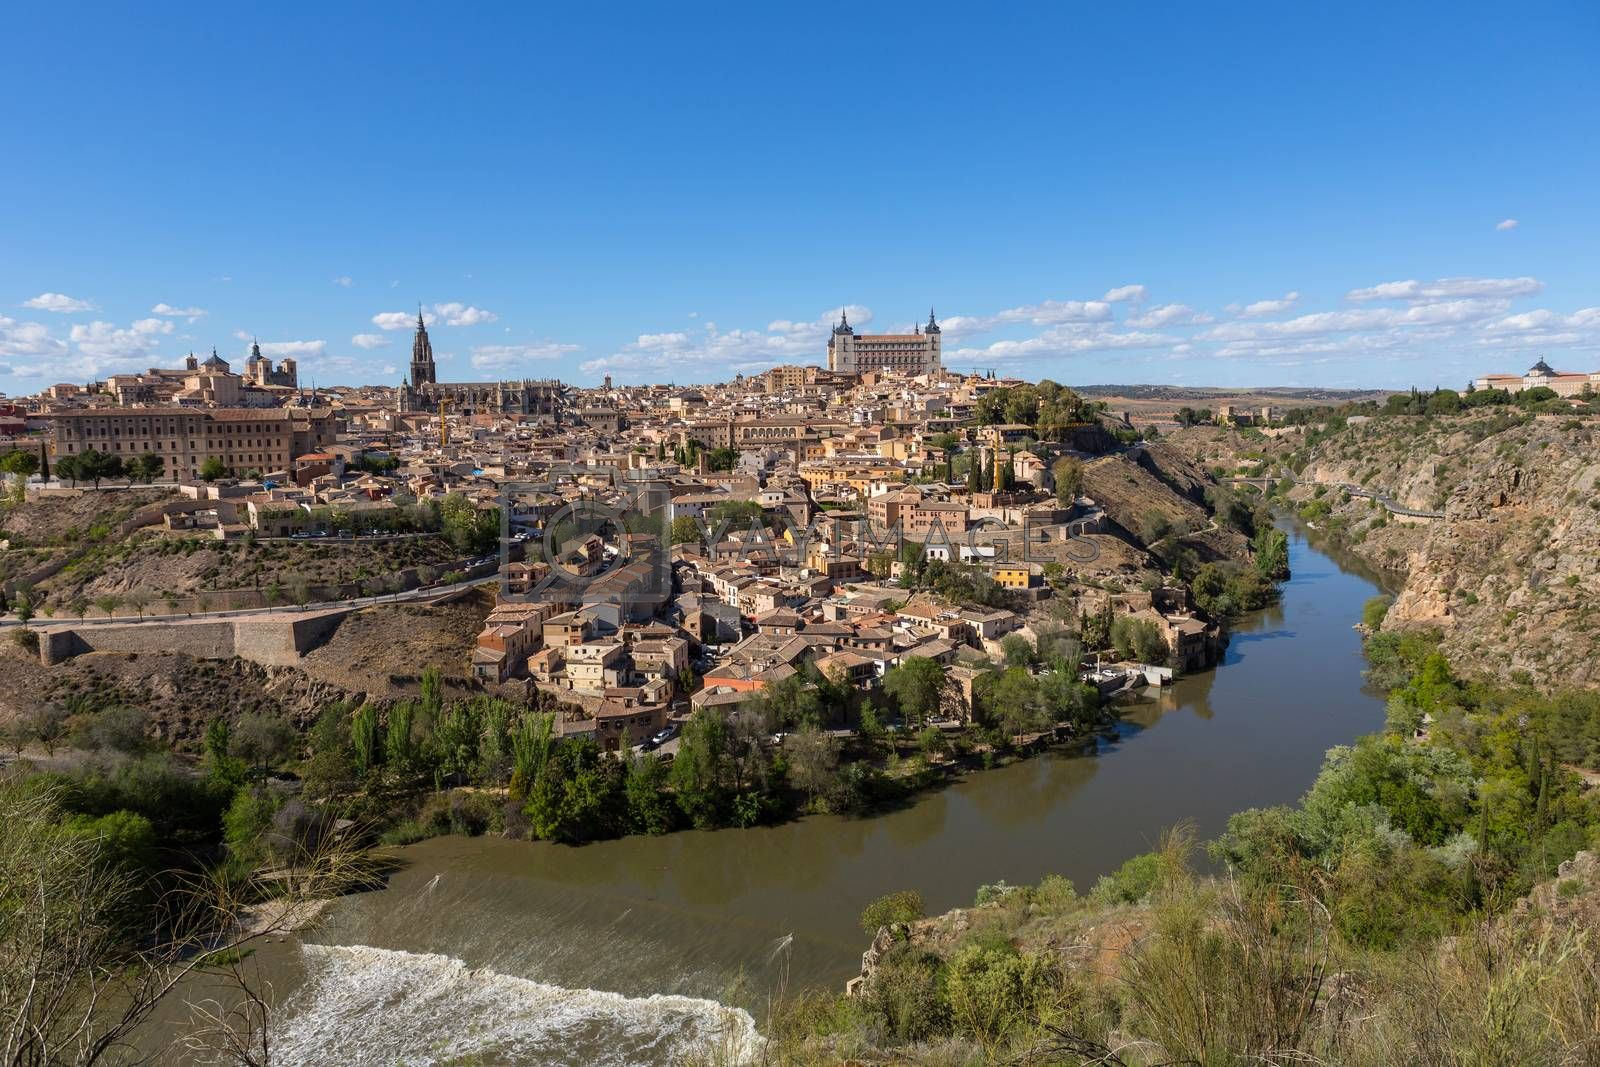 View of Toledo from the Mirador del Valle, Spain